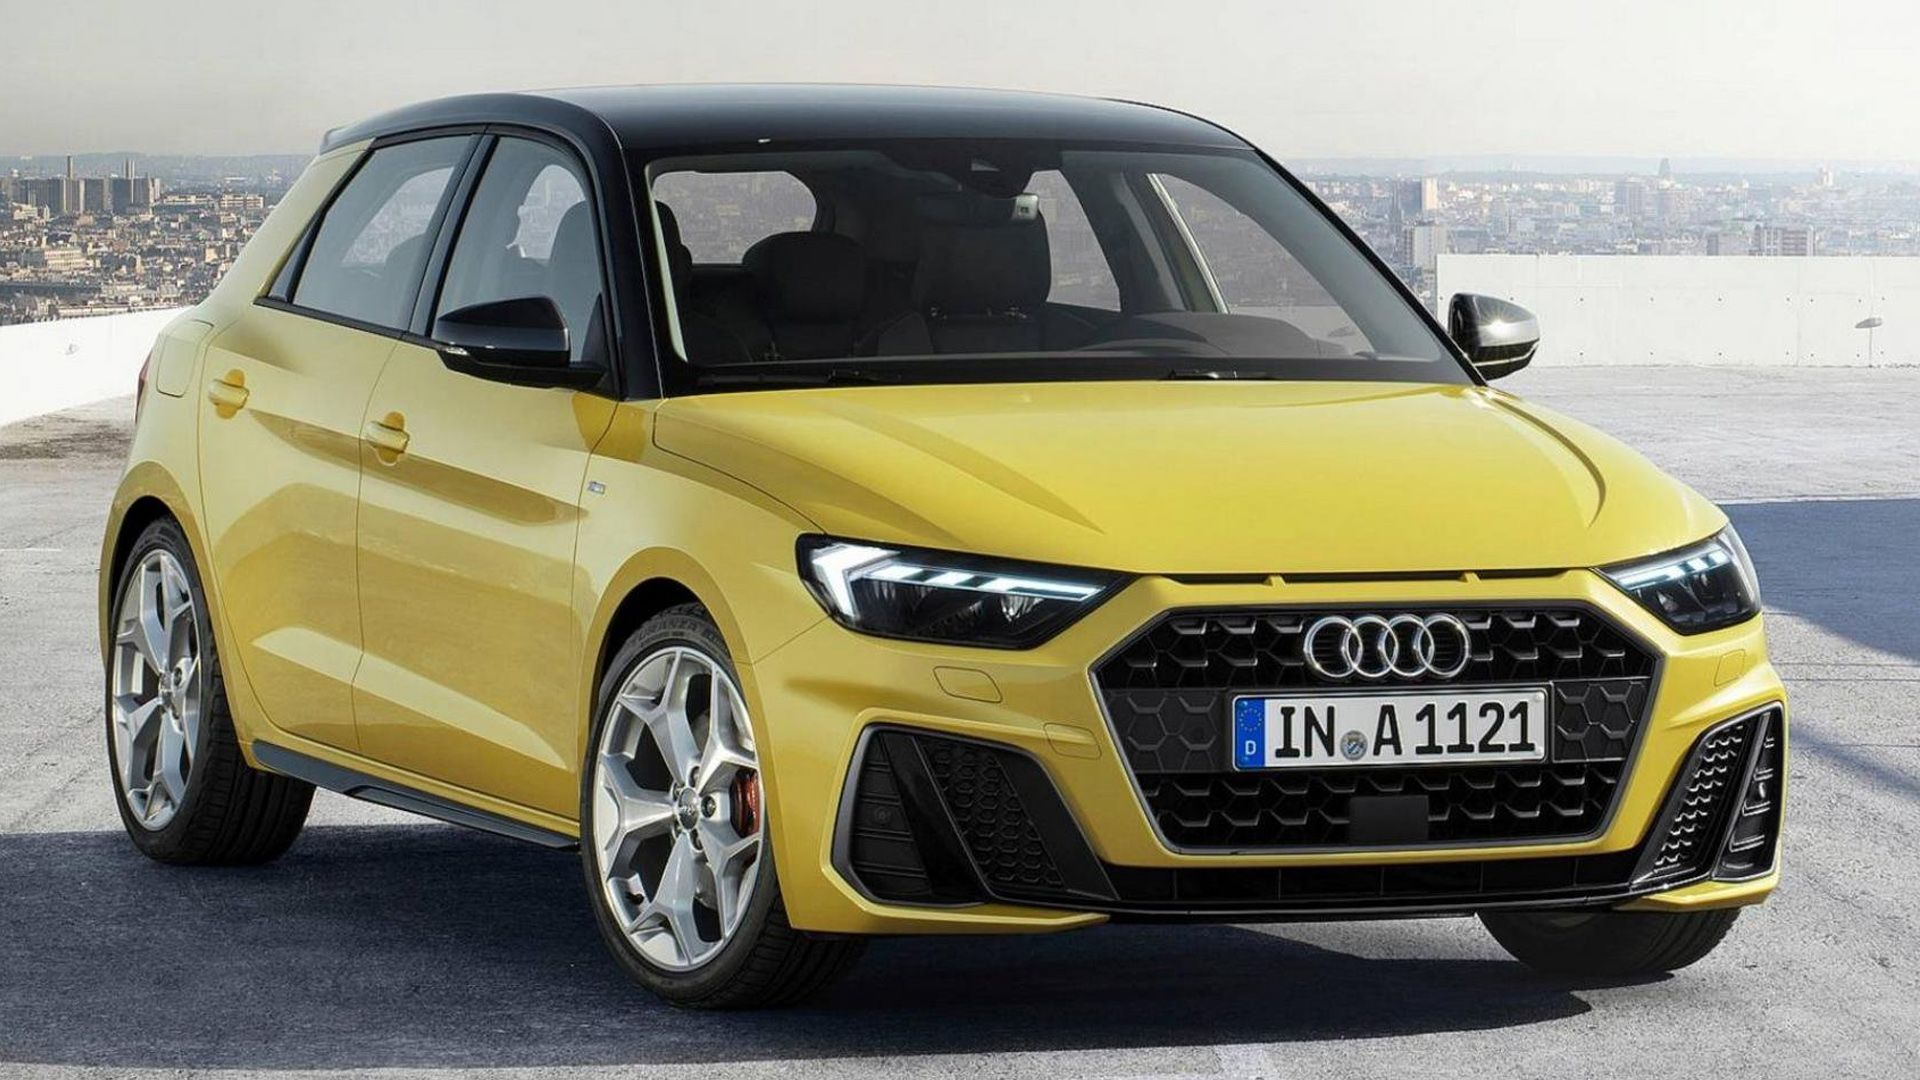 In 2010, a brandnew Audi model line made its debut in the